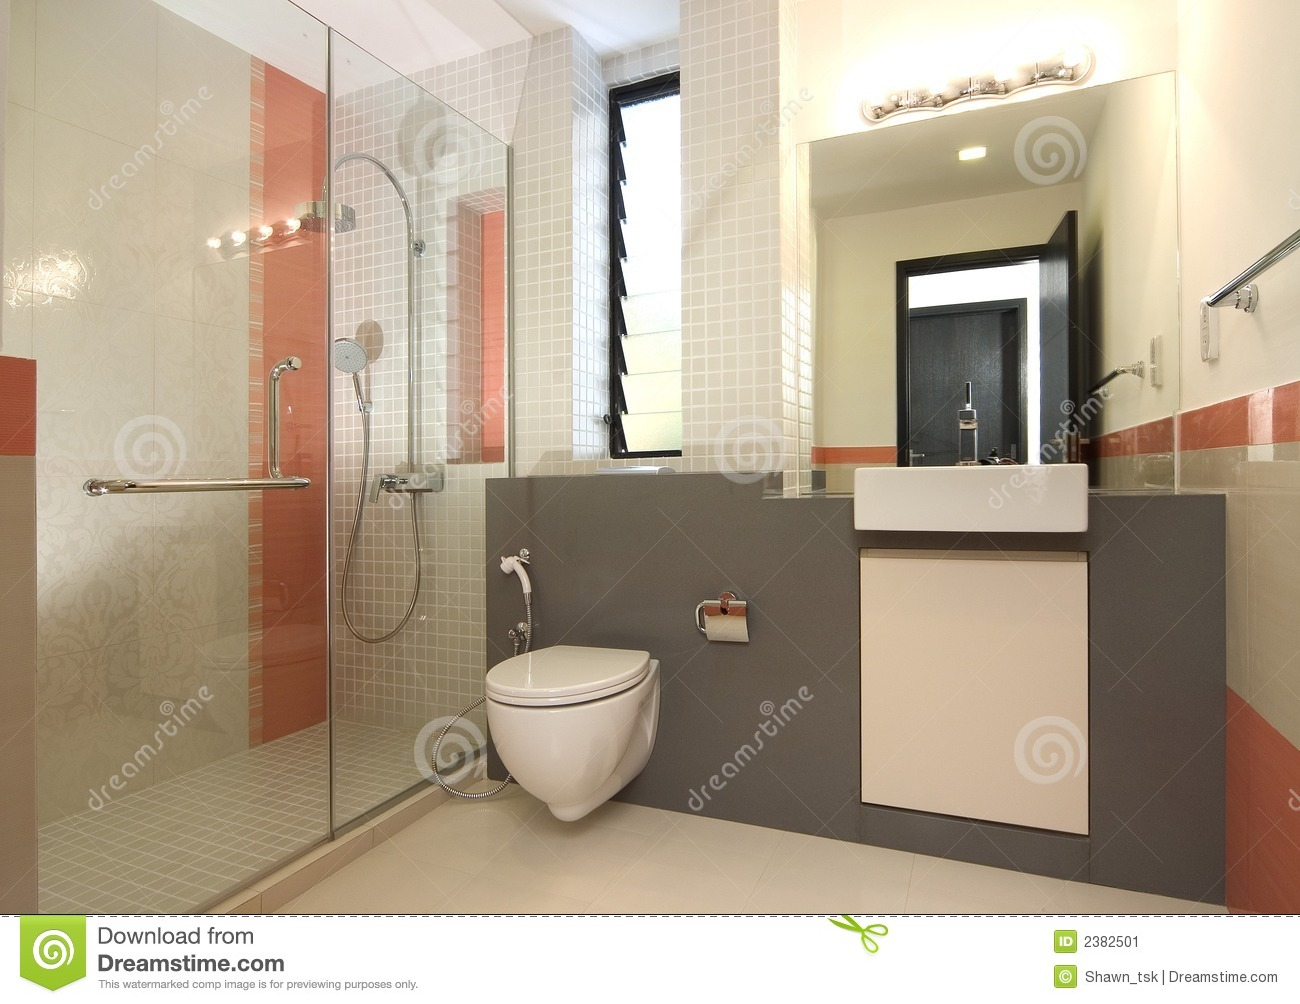 Interior design bathroom stock image image of light for Bathroom interiors for small bathrooms